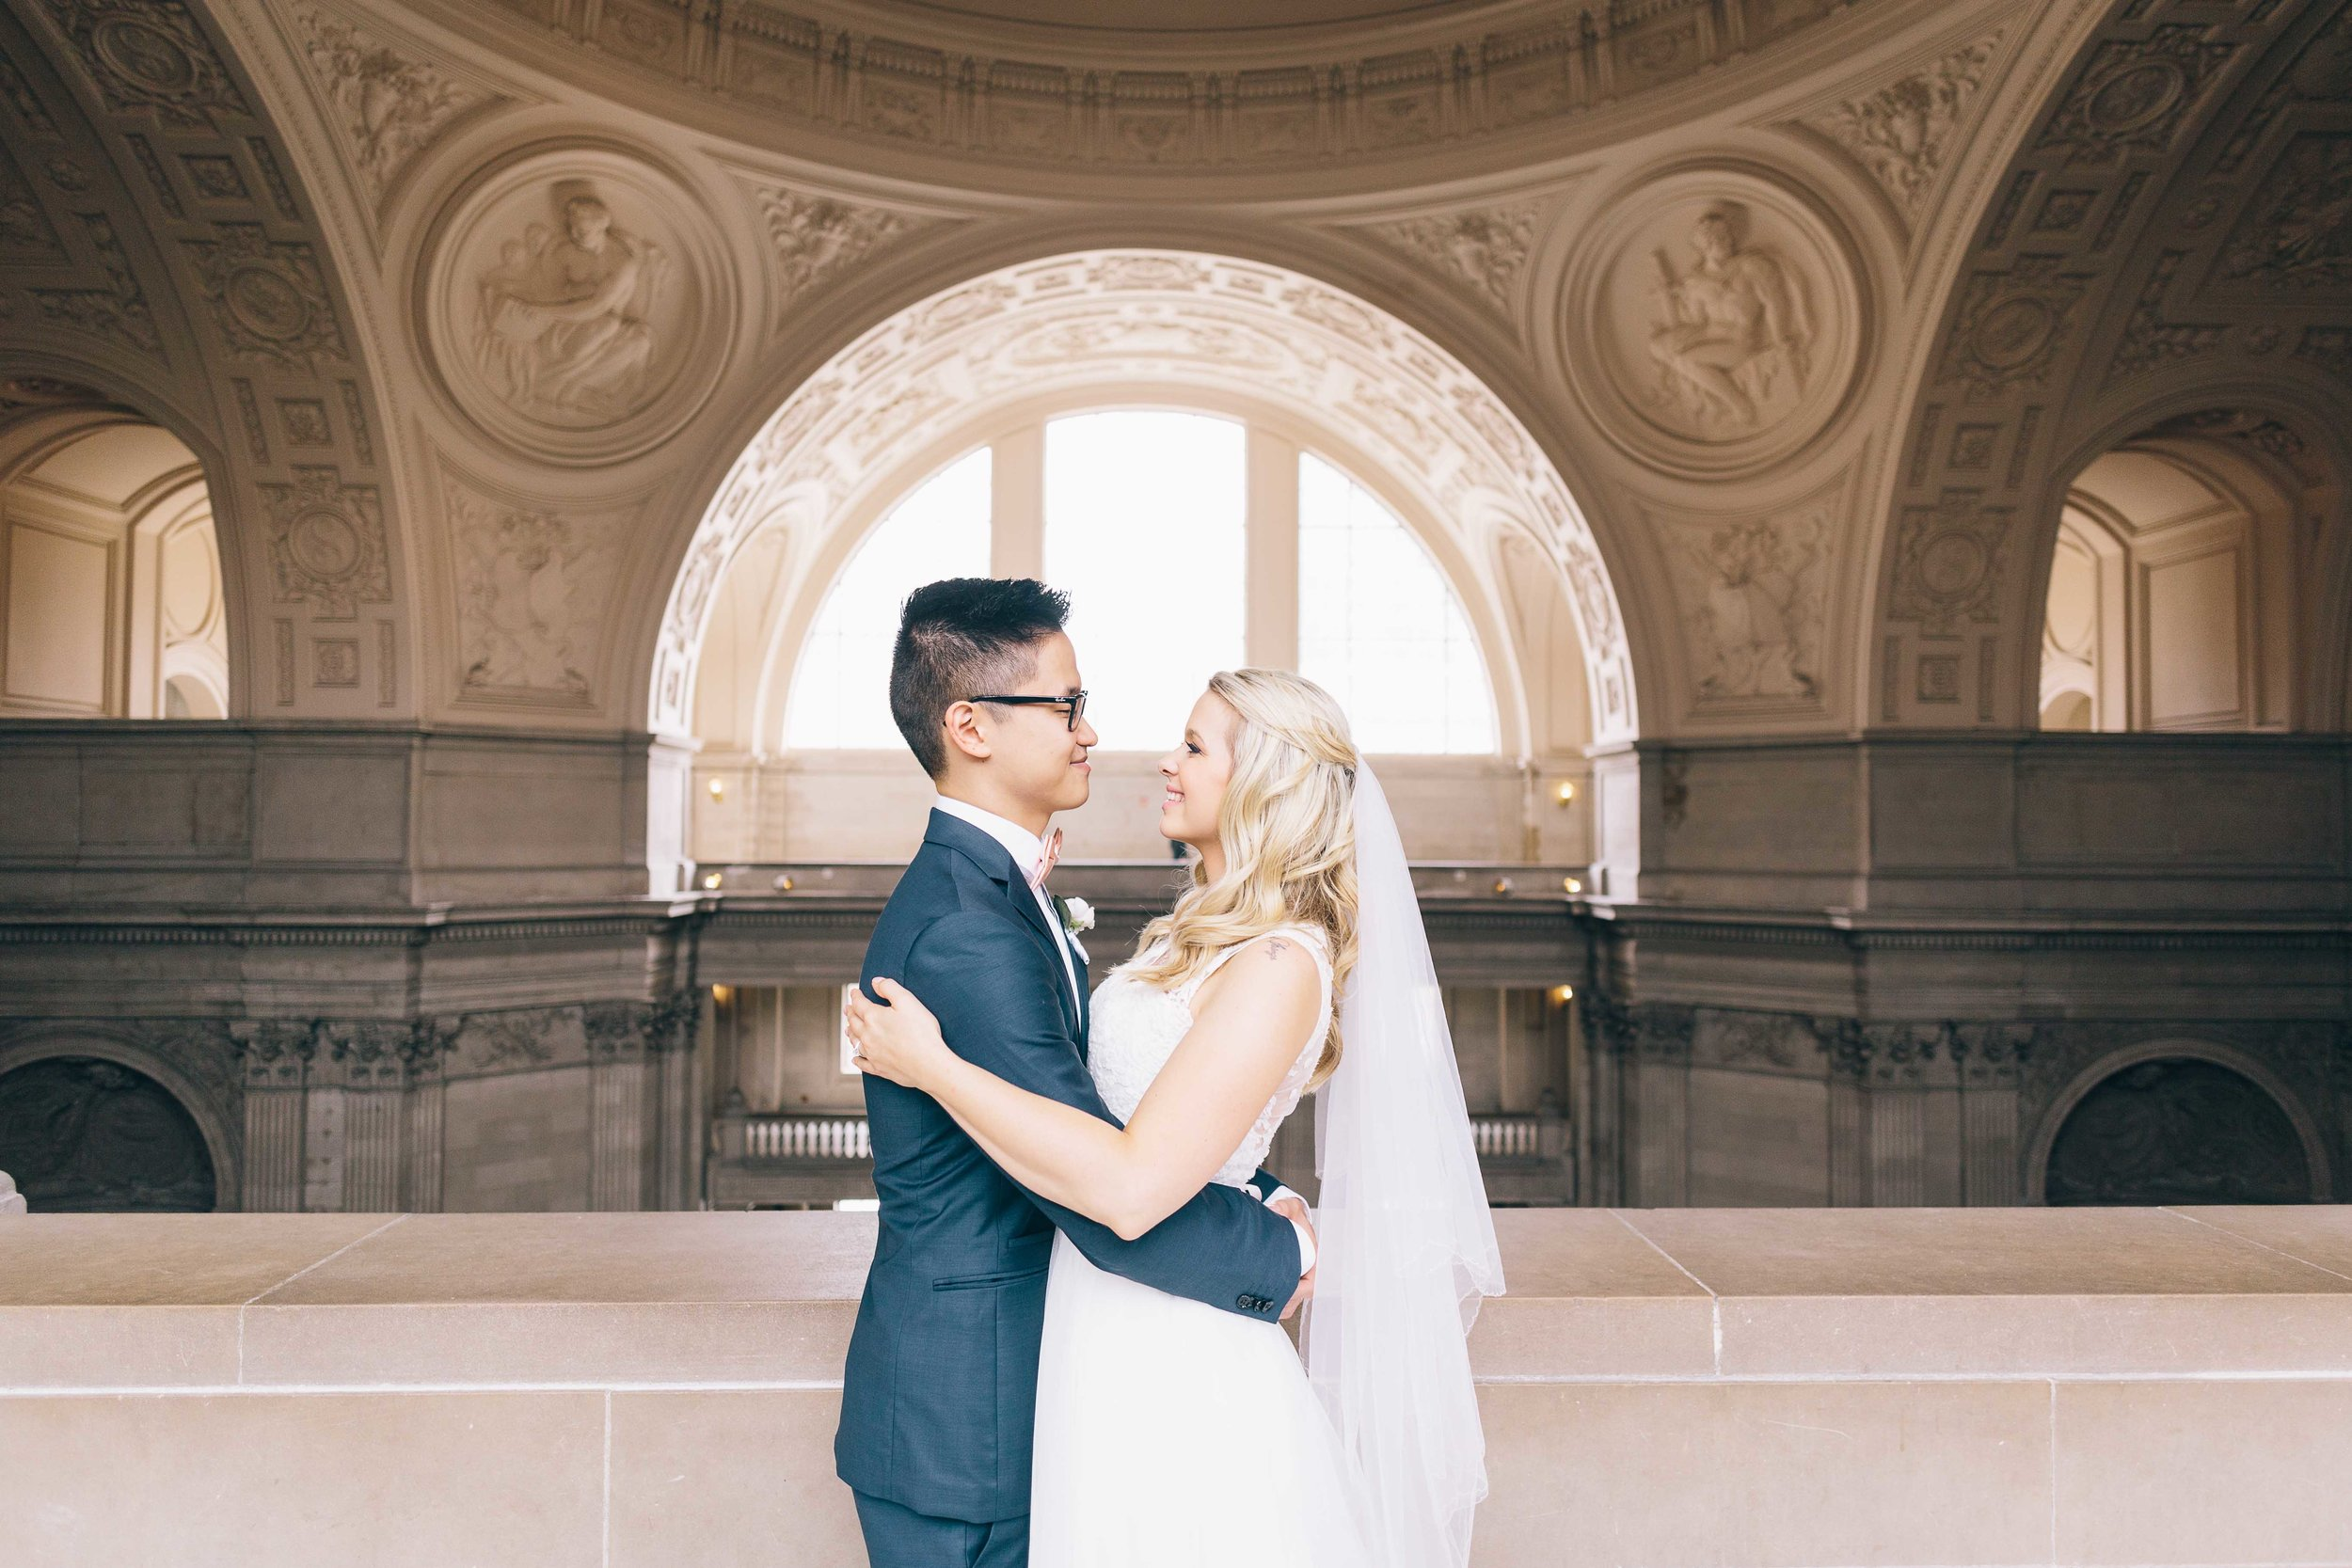 San Francisco City Hall Pre-Wedding Photos by JBJ Pictures - SF City Hall Wedding and Engagement Photos (16).jpg